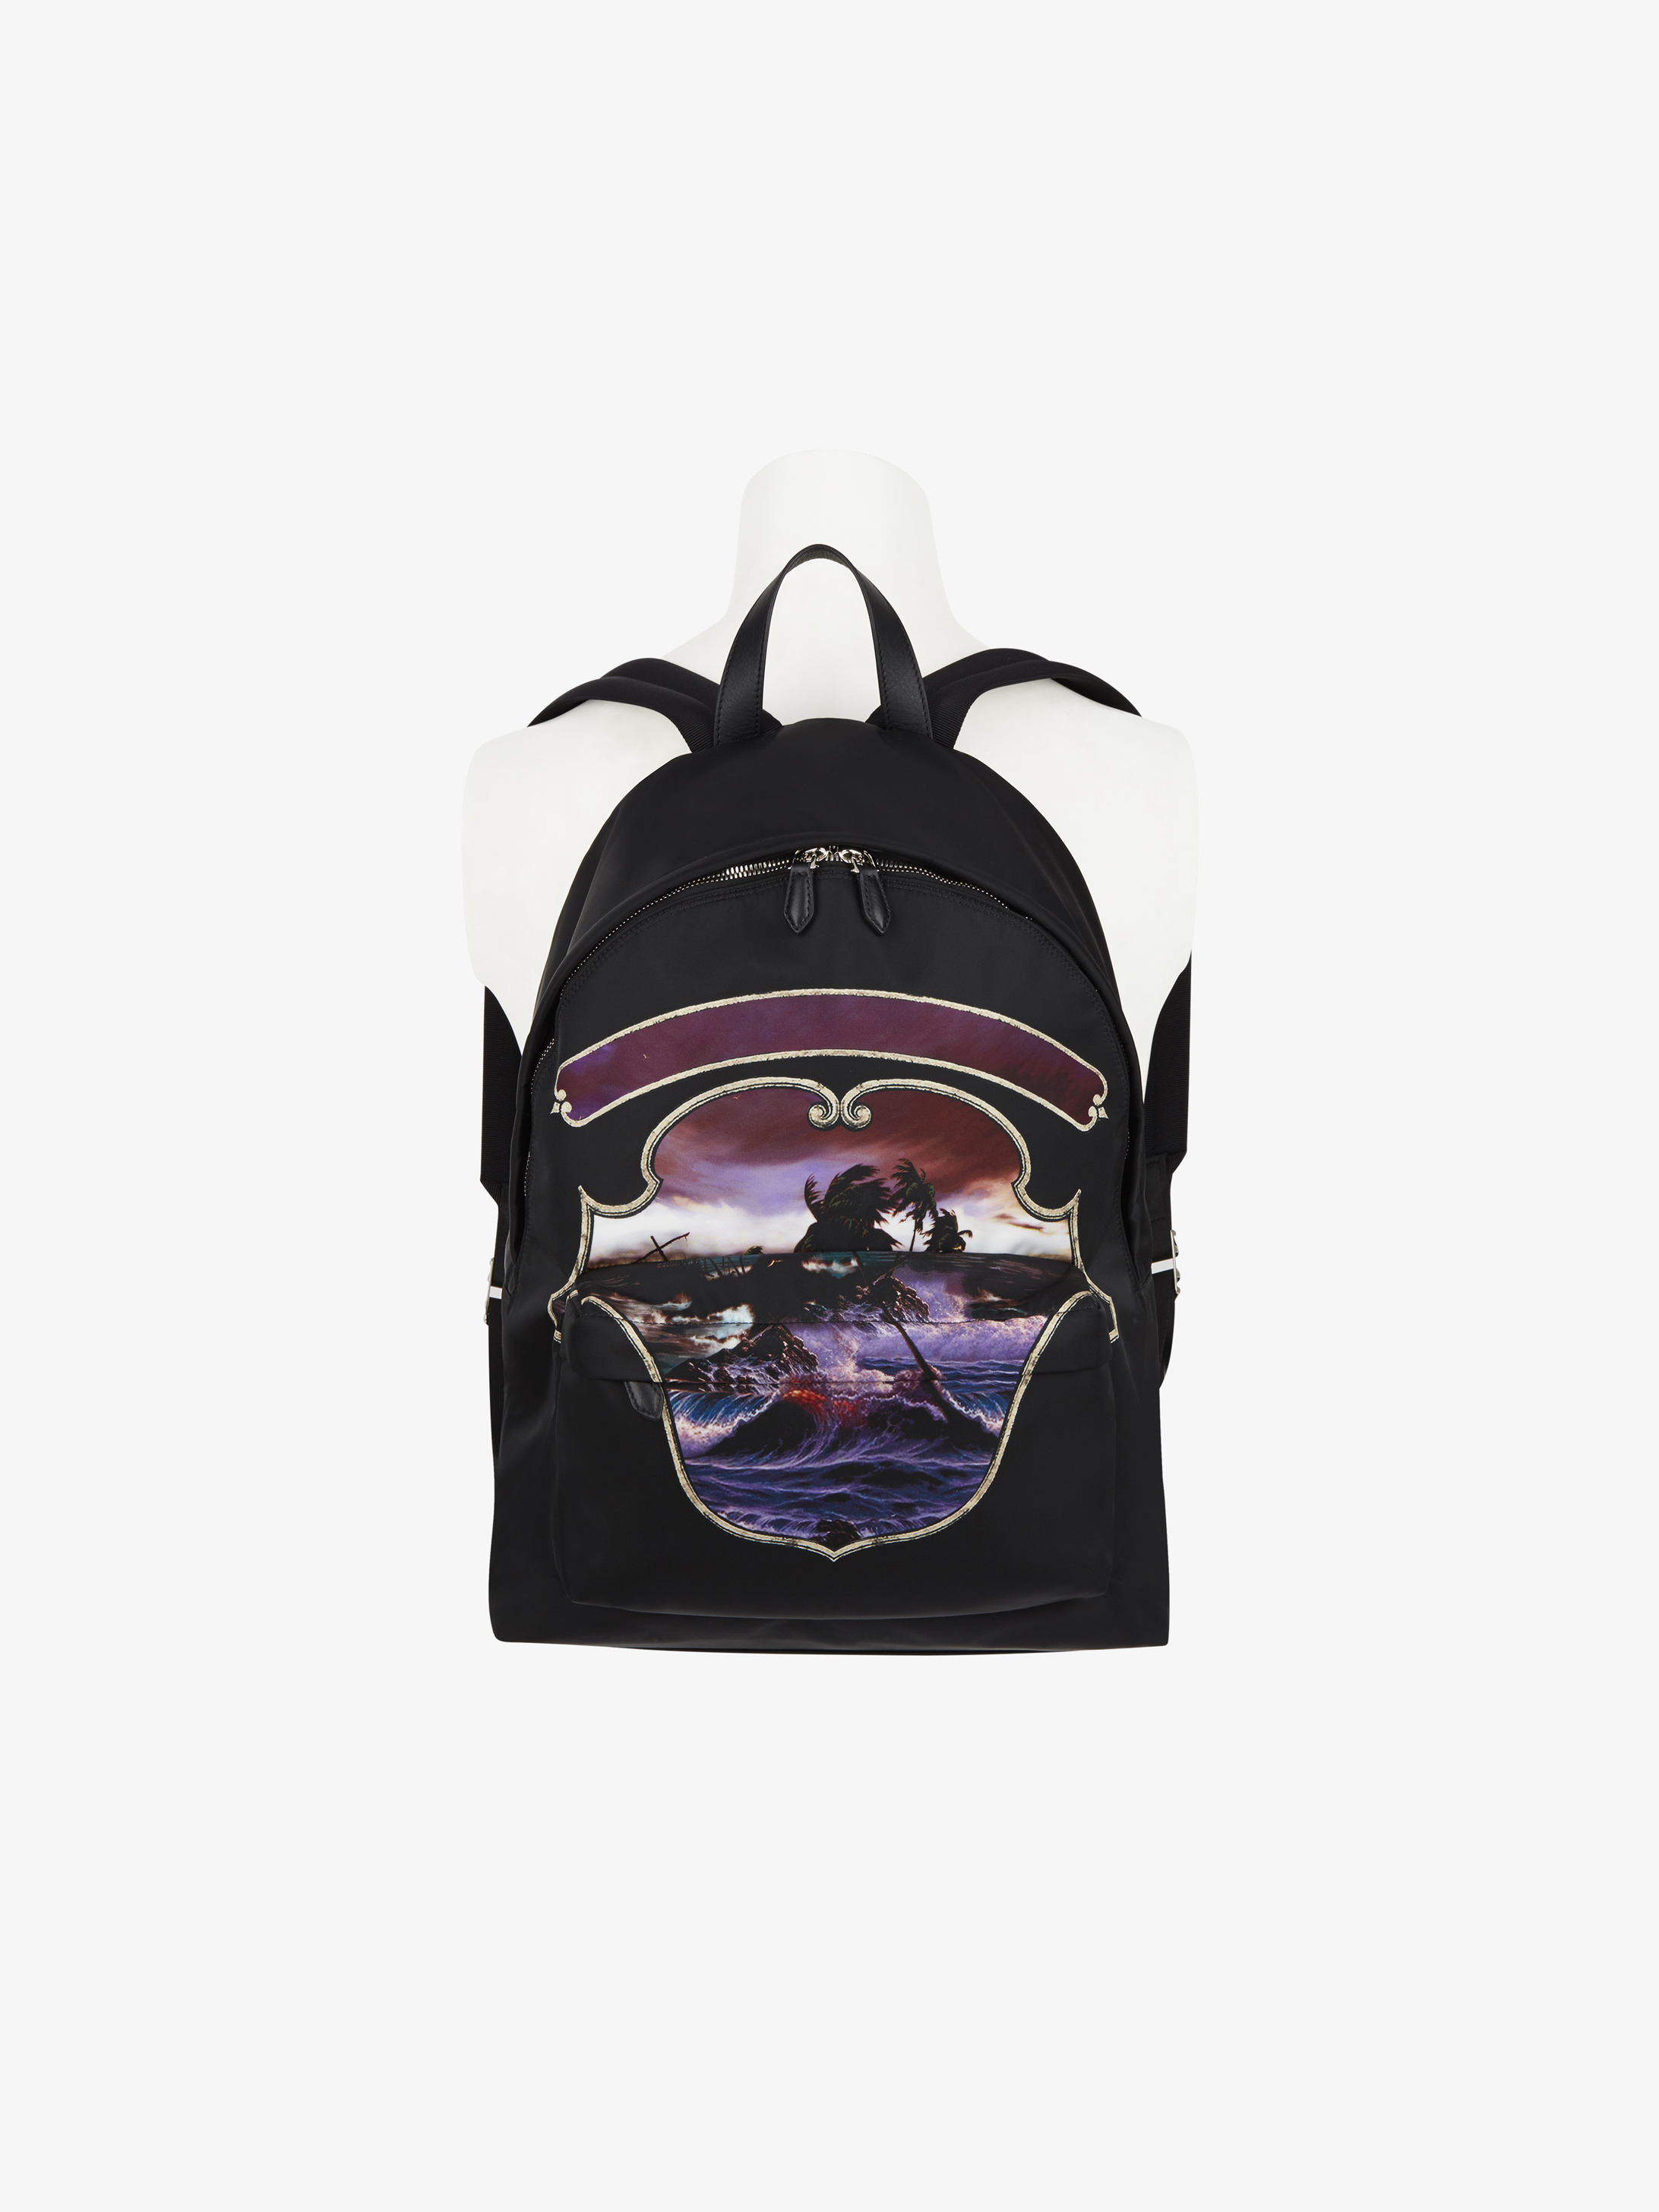 Hawaï crest printed backpack